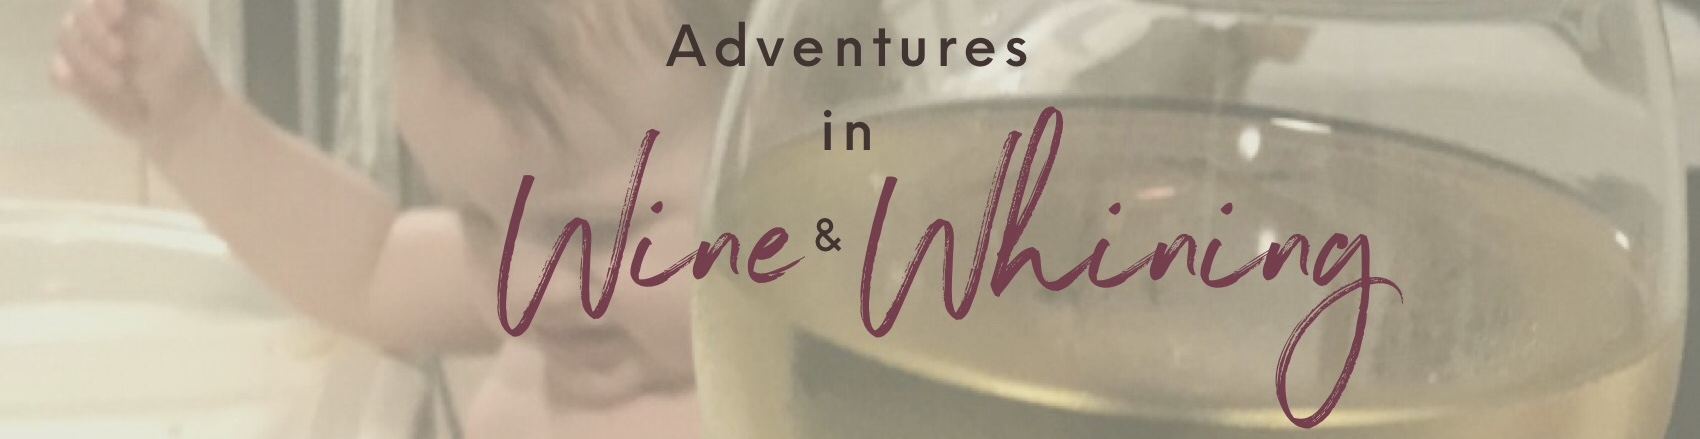 Pinot and Parenting